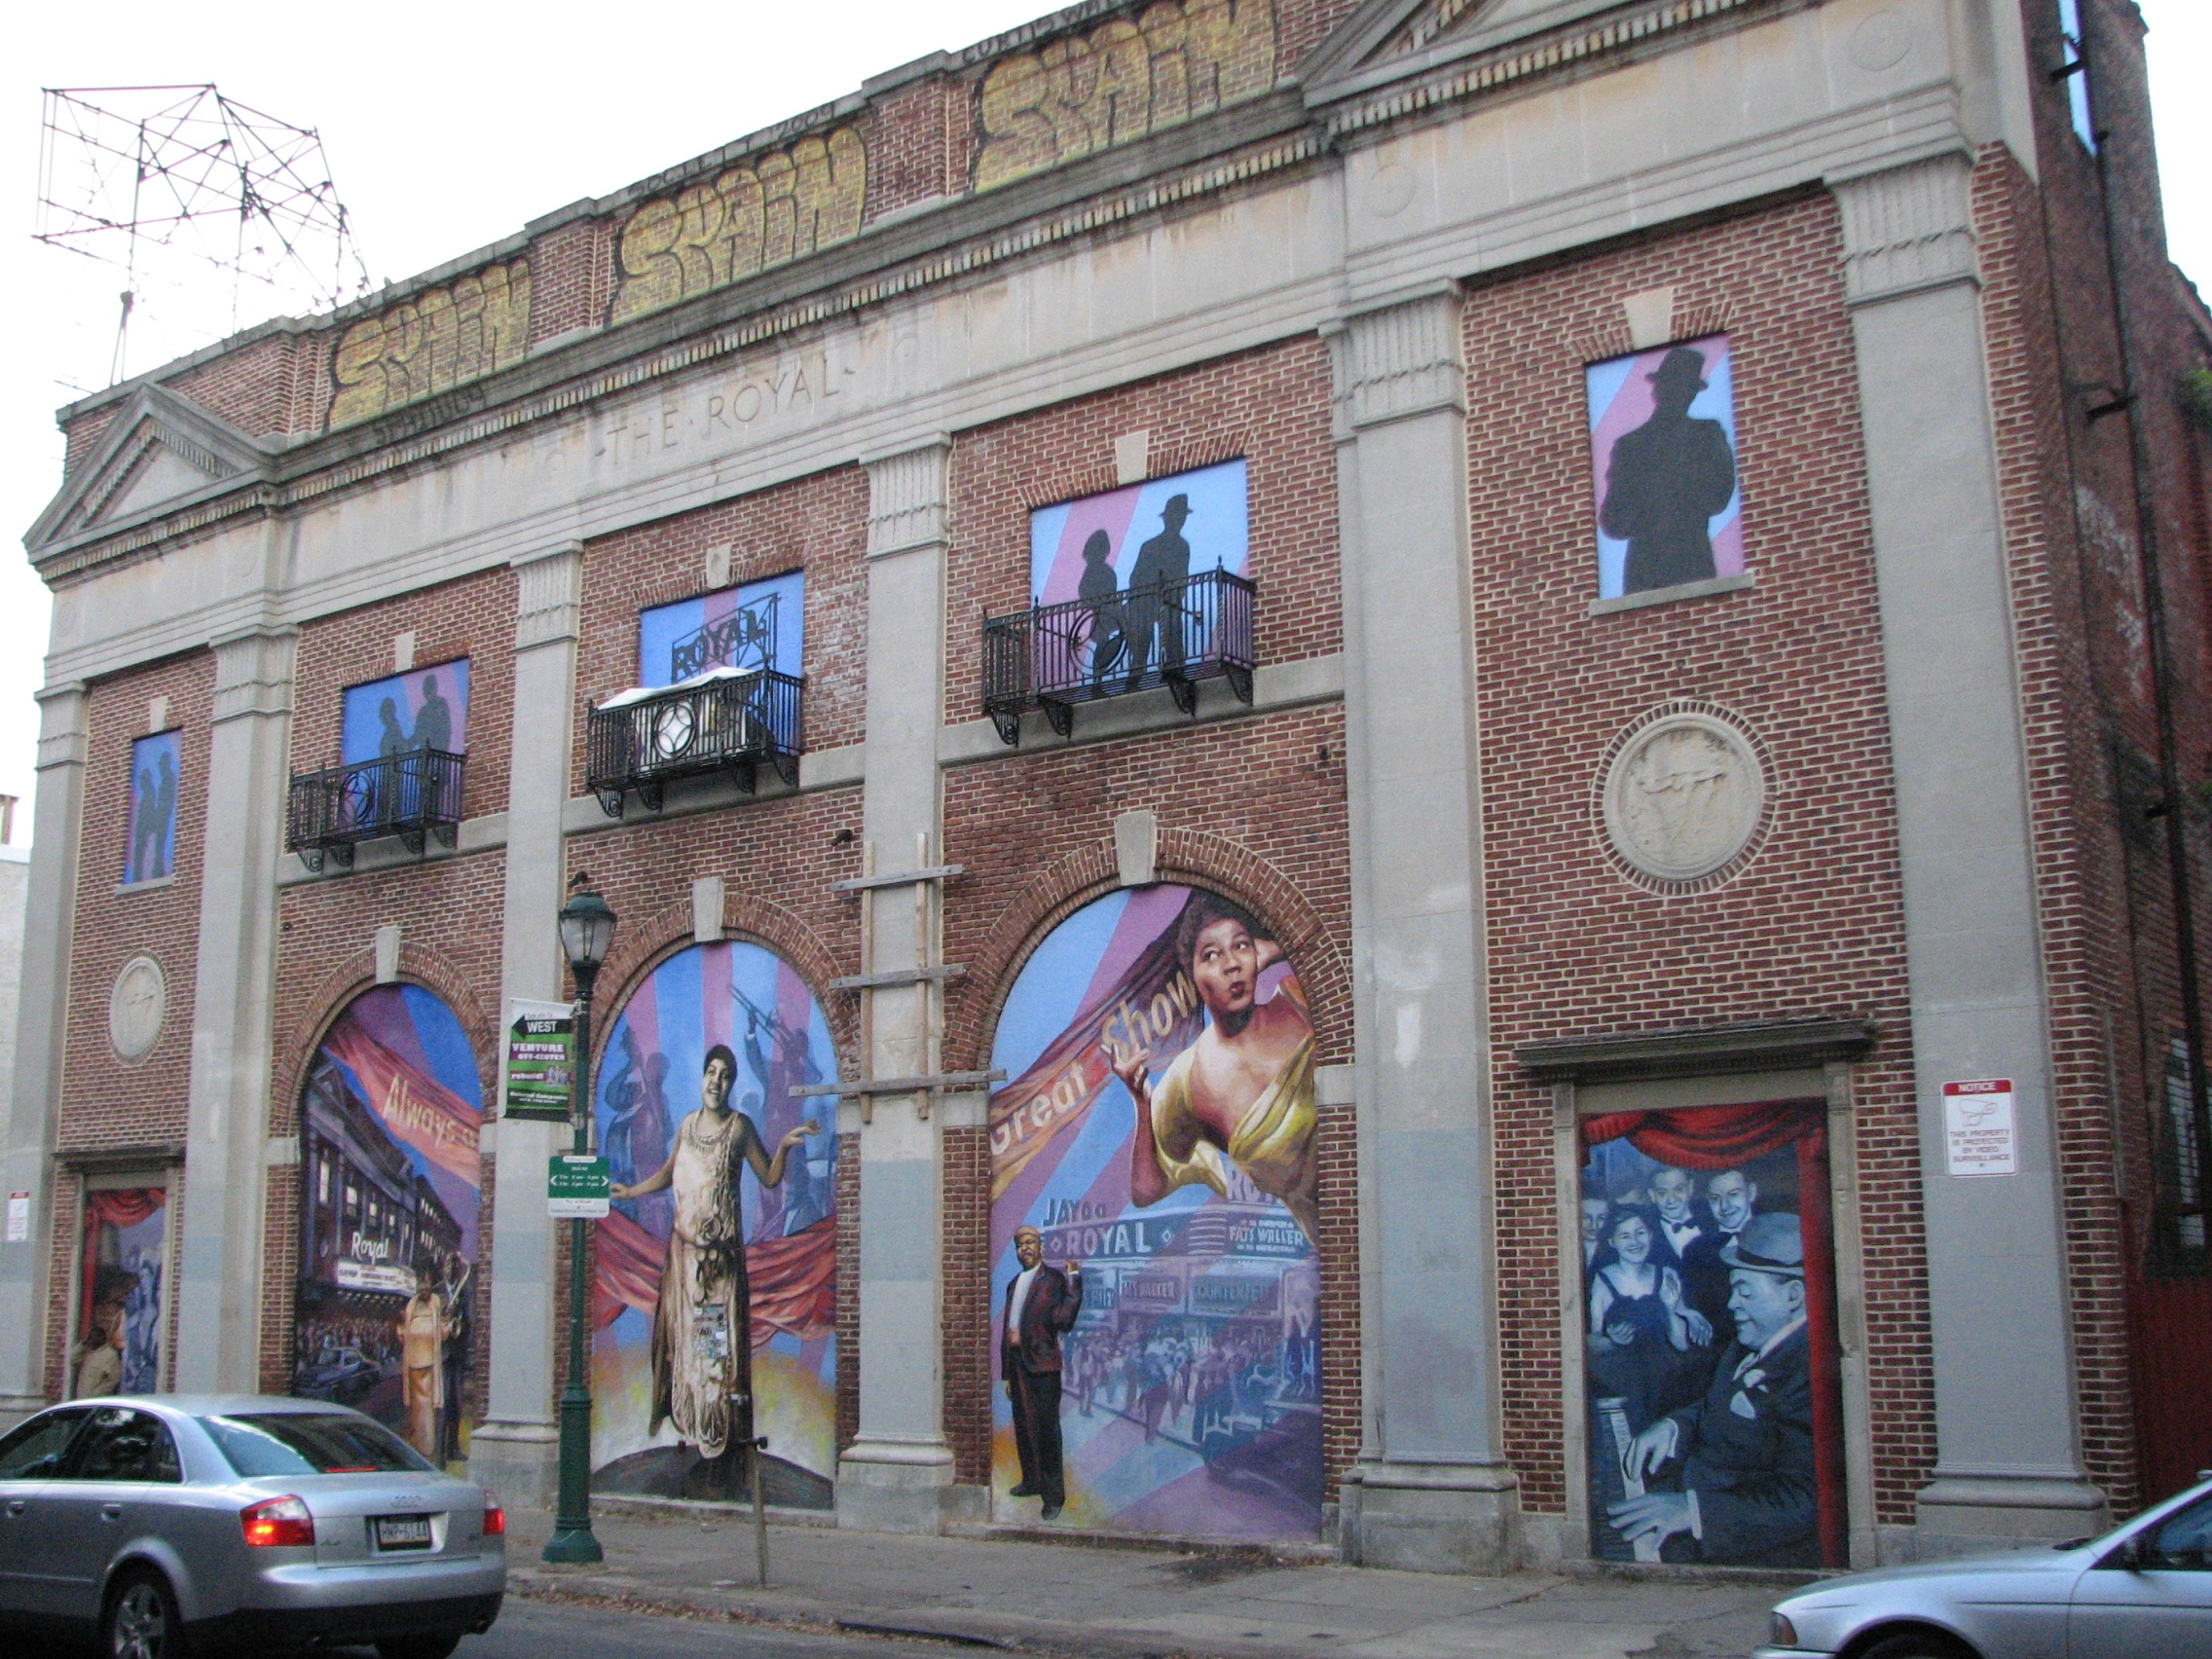 The entire theater building was designated historic in 1978, and an easement added another layer of protection to the facade.